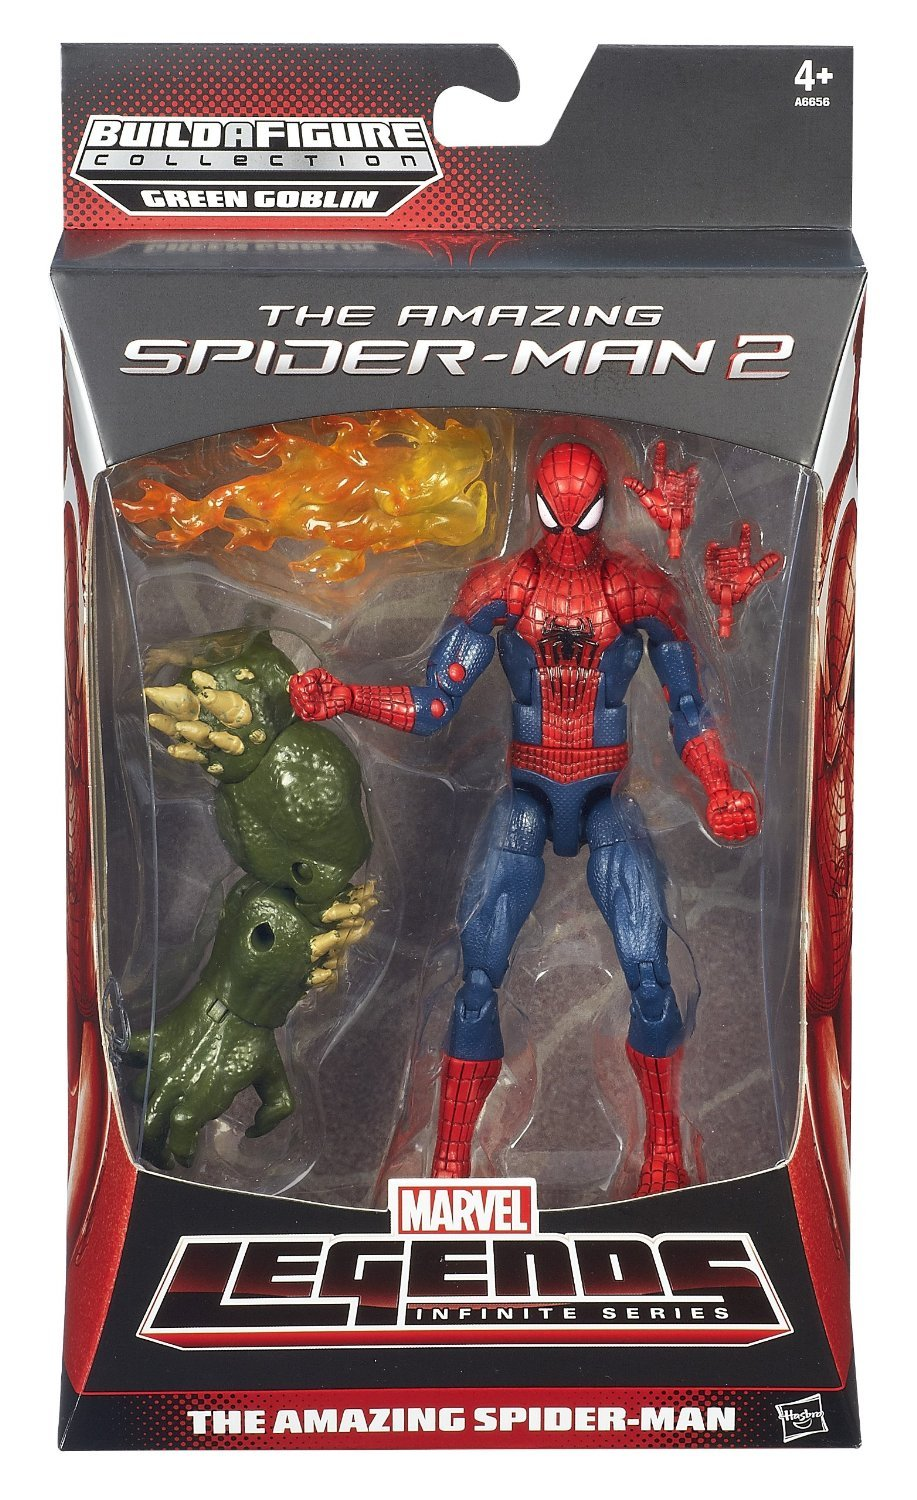 DISNEY Marvel Legends SPIDER-MAN Infinite Actionfigur THE AMAZING SPIDER-MAN – mit Build-A-Green Goblin Part bestellen